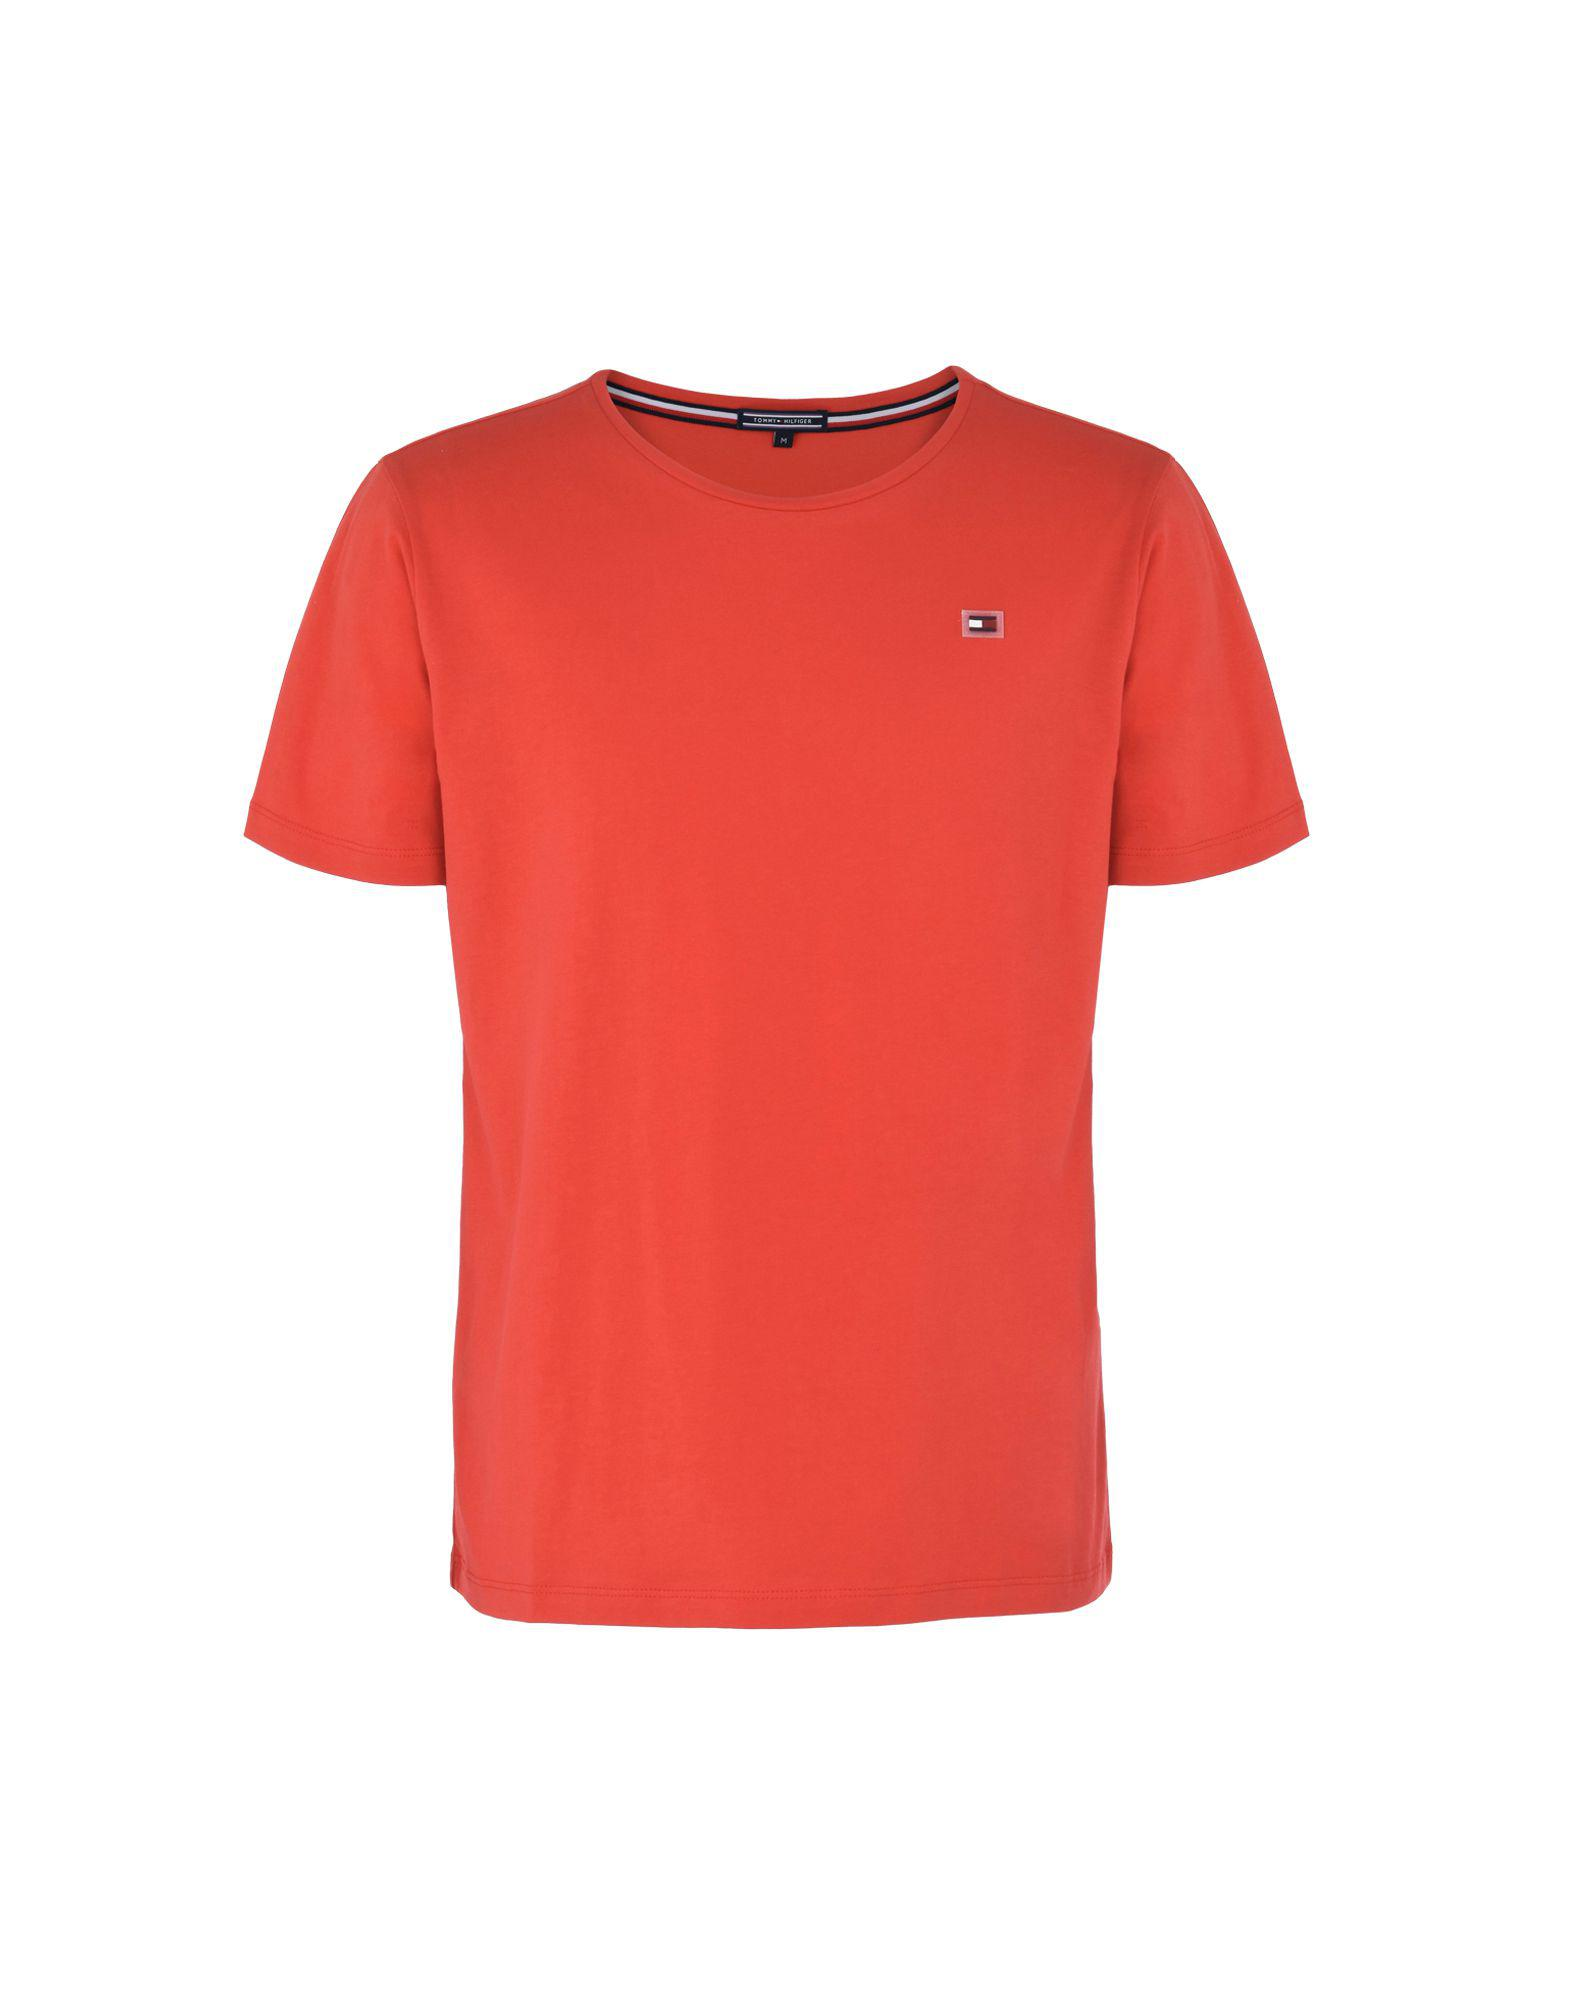 a9e5d1a8 Tommy Hilfiger T-shirt in Red for Men - Lyst